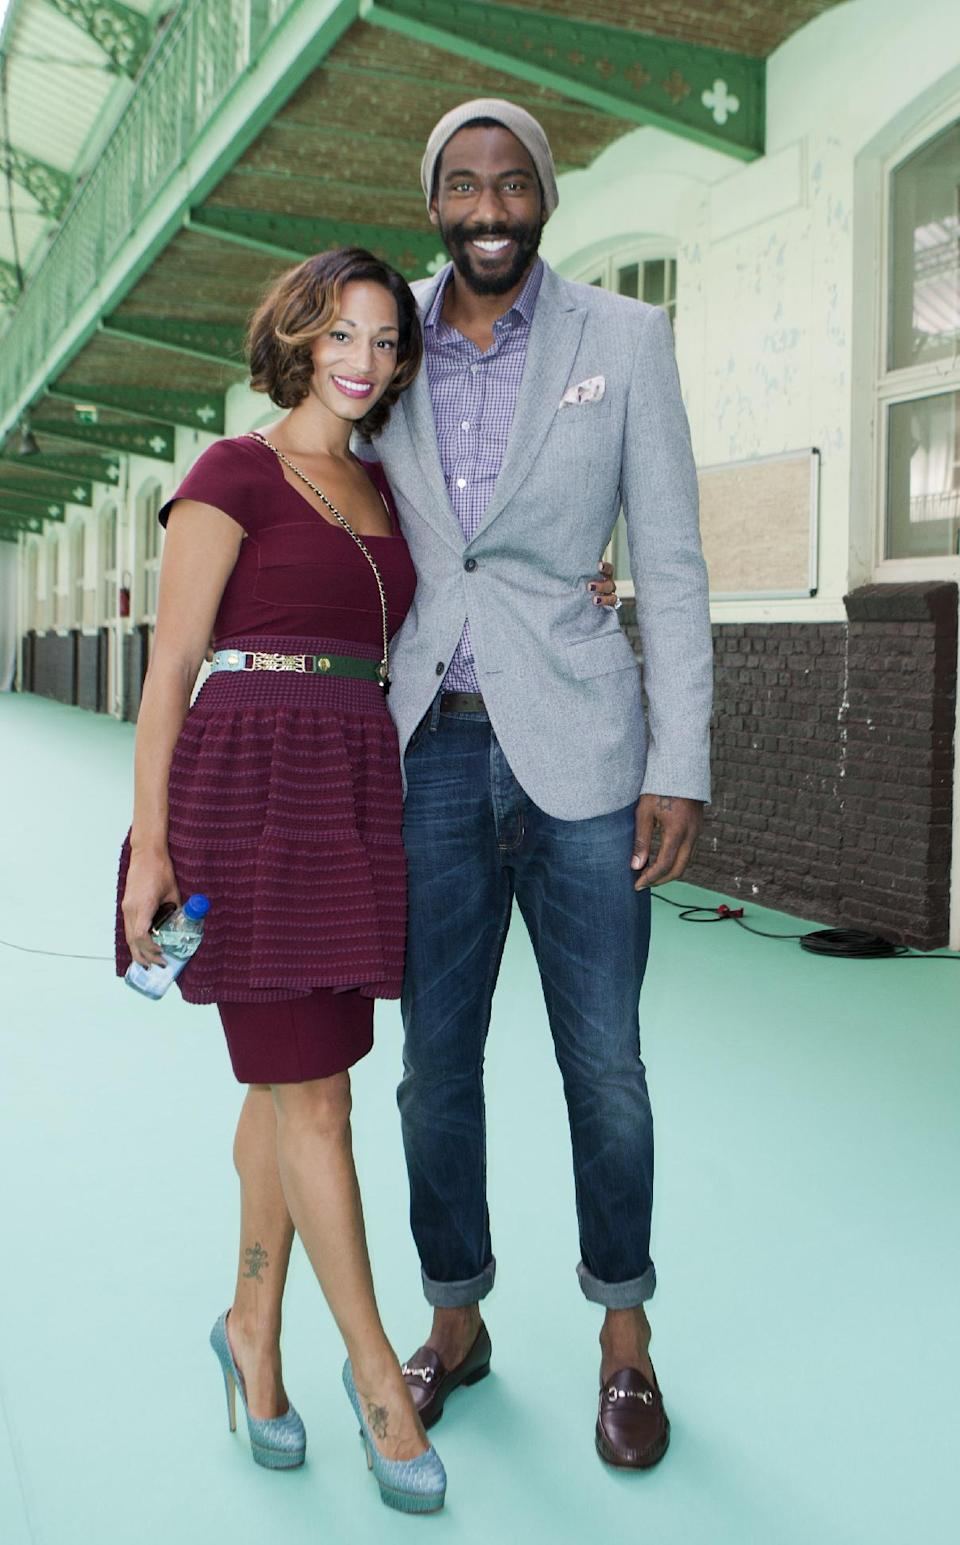 U.S basketball player Amare Stoudemire, right, and Alexis Welch poses prior to Paul Smith's Men's Spring-Summer 2013 collection, for Lanvin fashion house in Paris, France, Sunday, July 1, 2012. (AP Photo/Jacques Brinon)